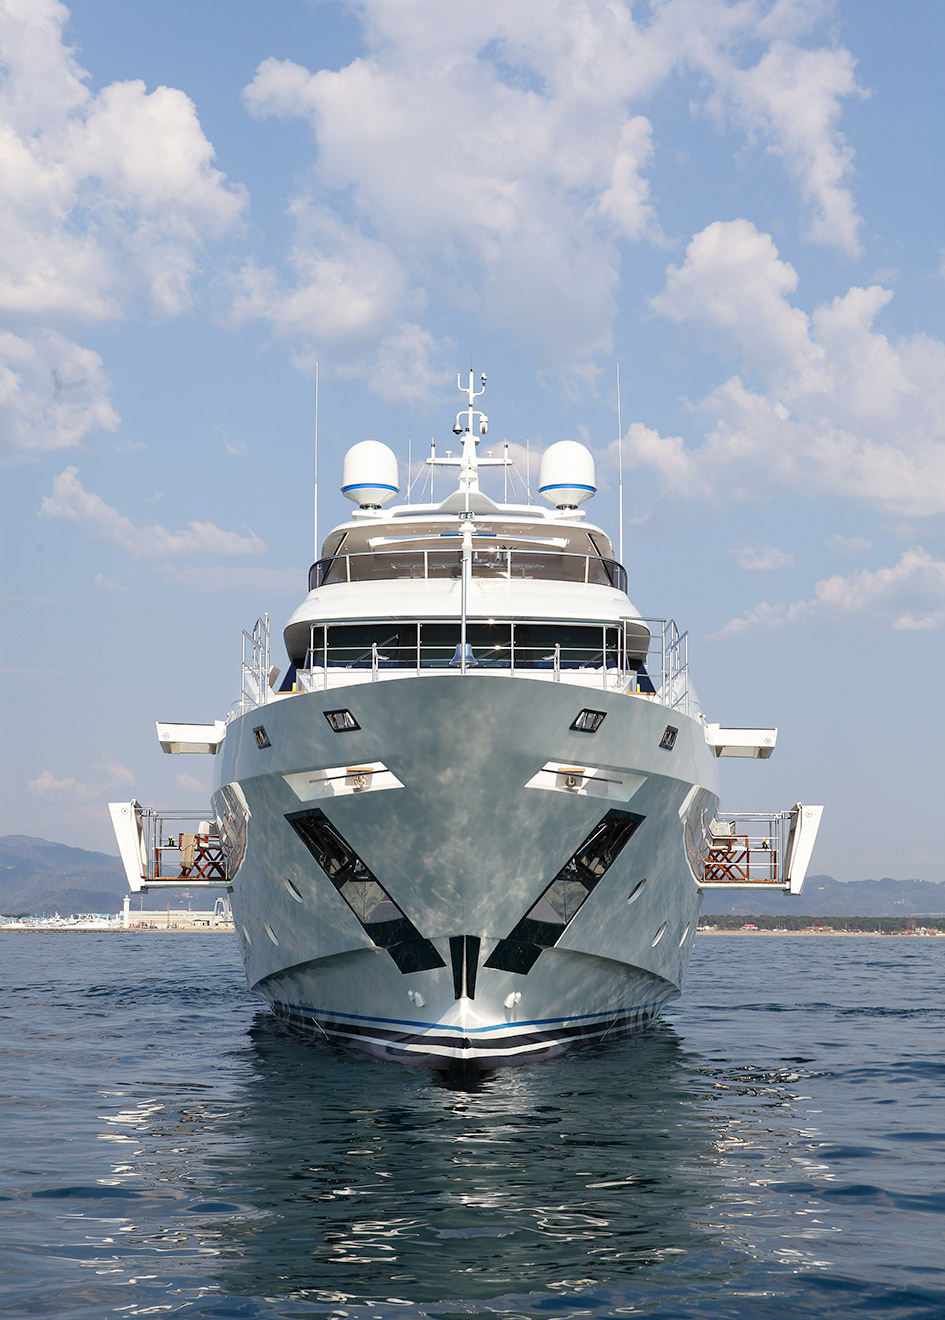 bow-view-of-the-benetti-fast-125-yacht-skyler